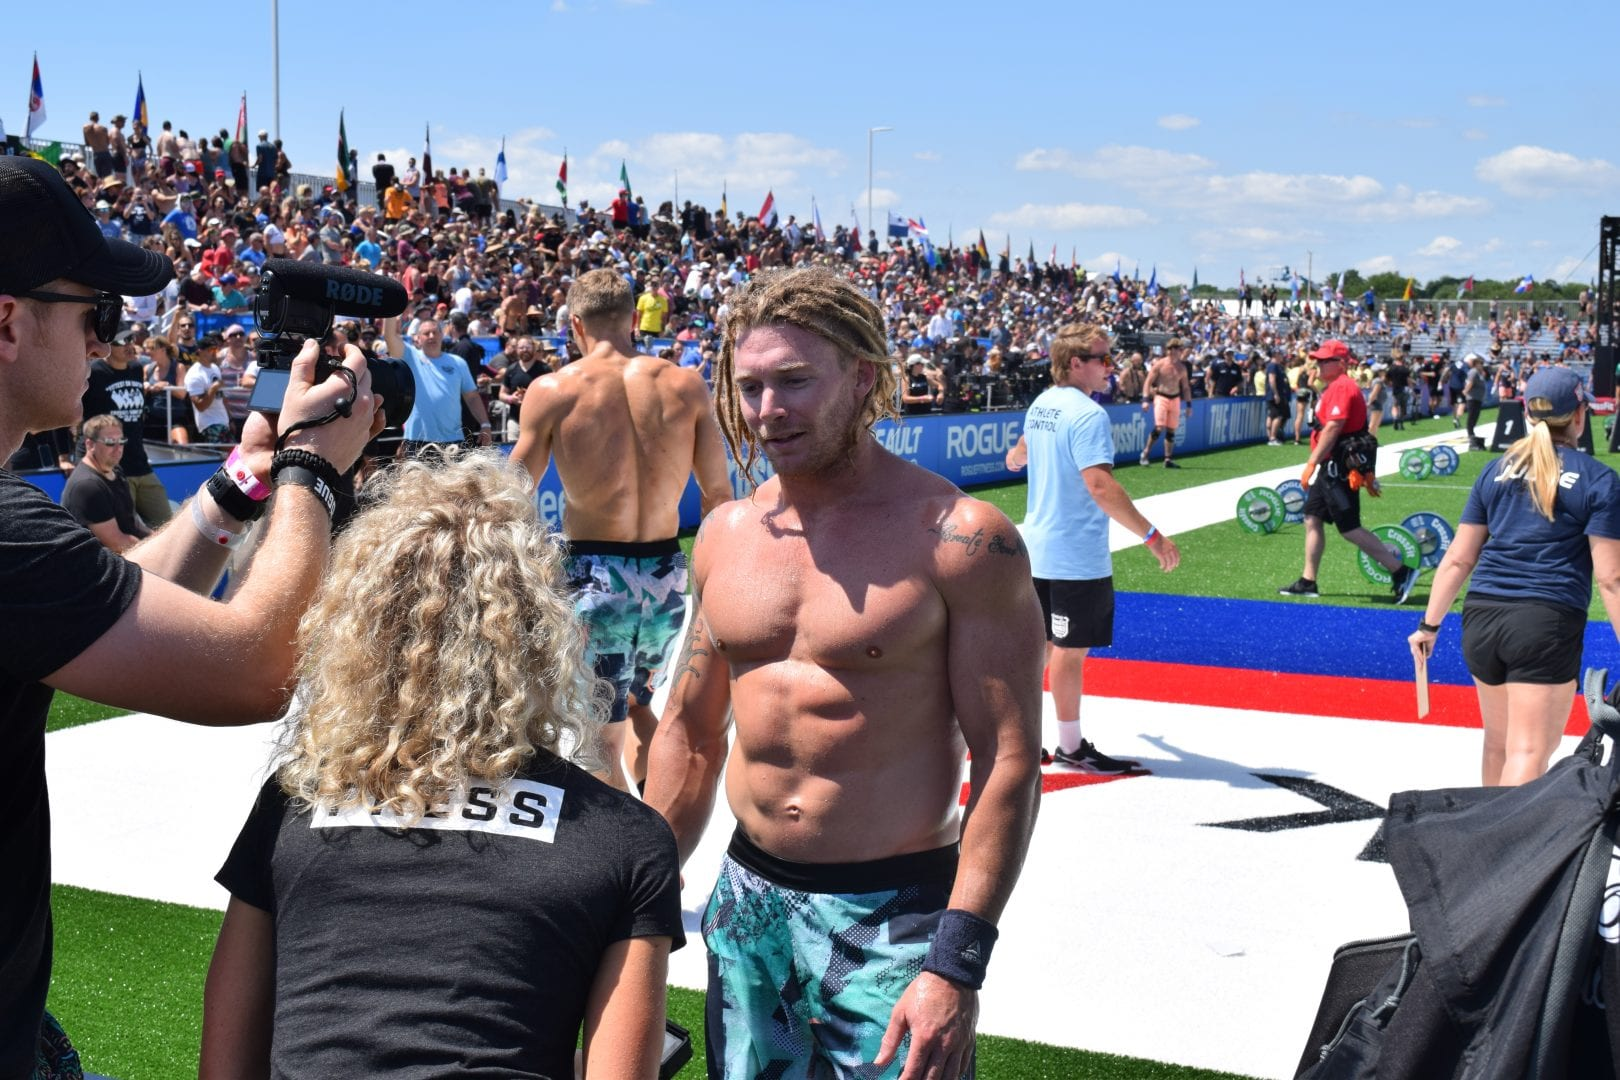 James Newbury is interviewed after completing an event at the 2019 CrossFit Games